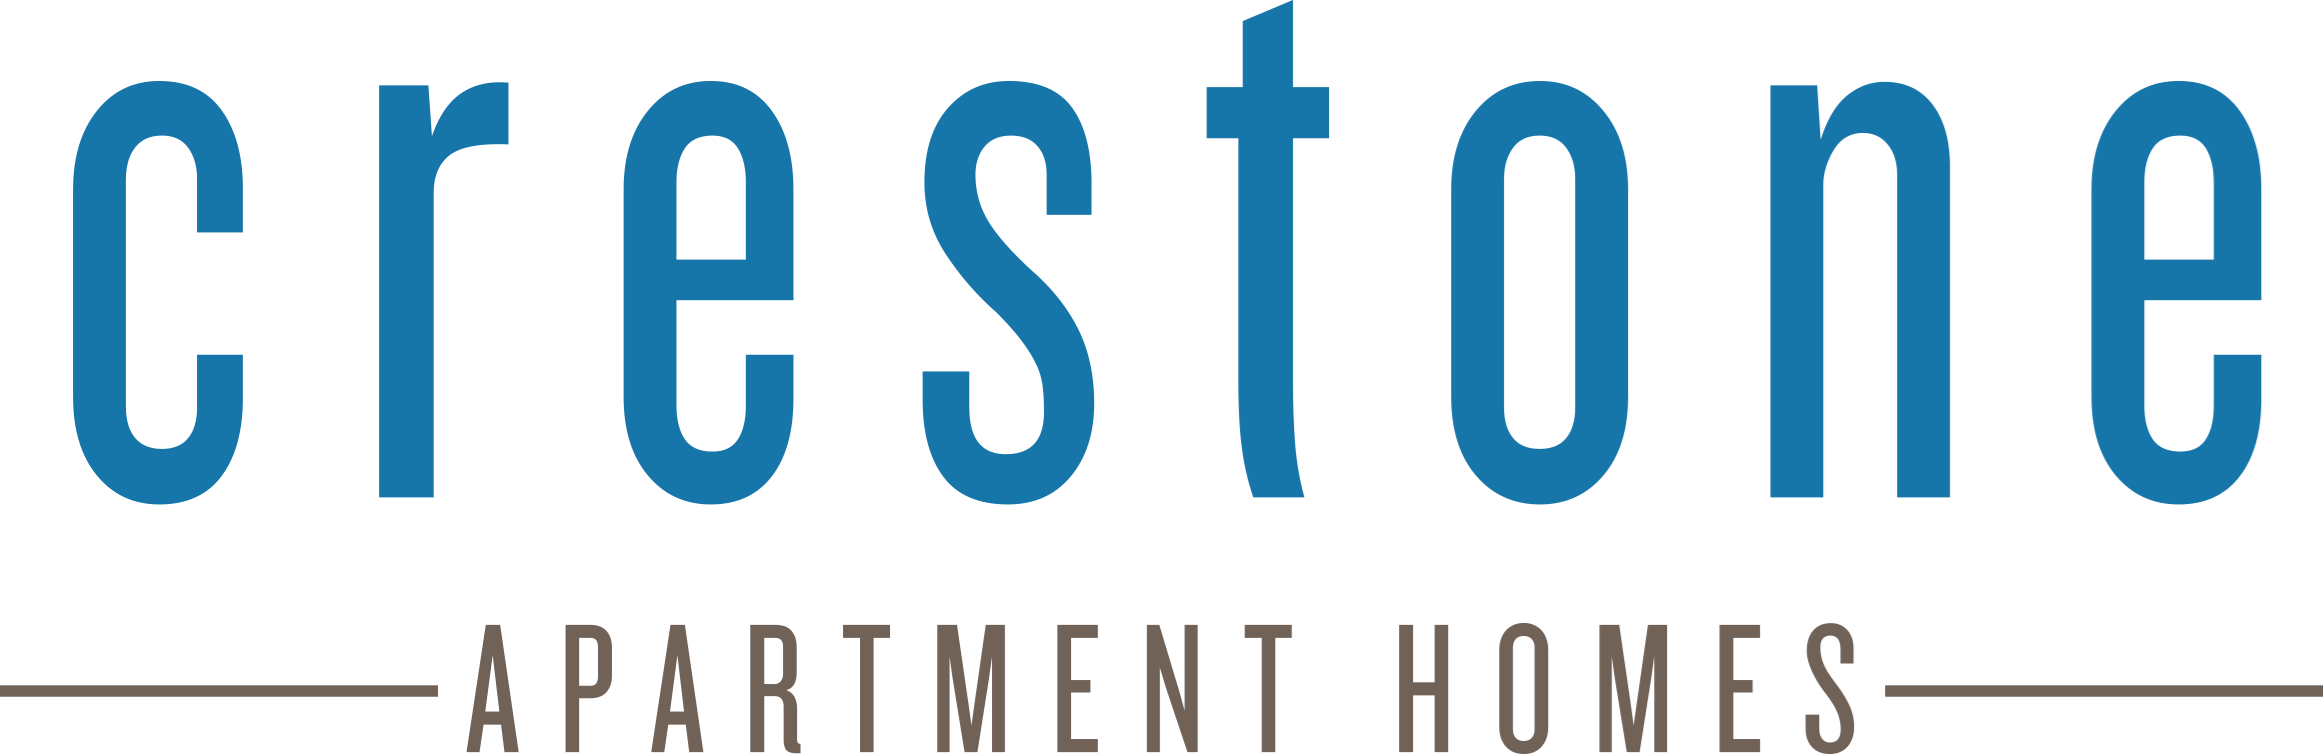 Crestone Apartment Homes Crestone Apartments Logo